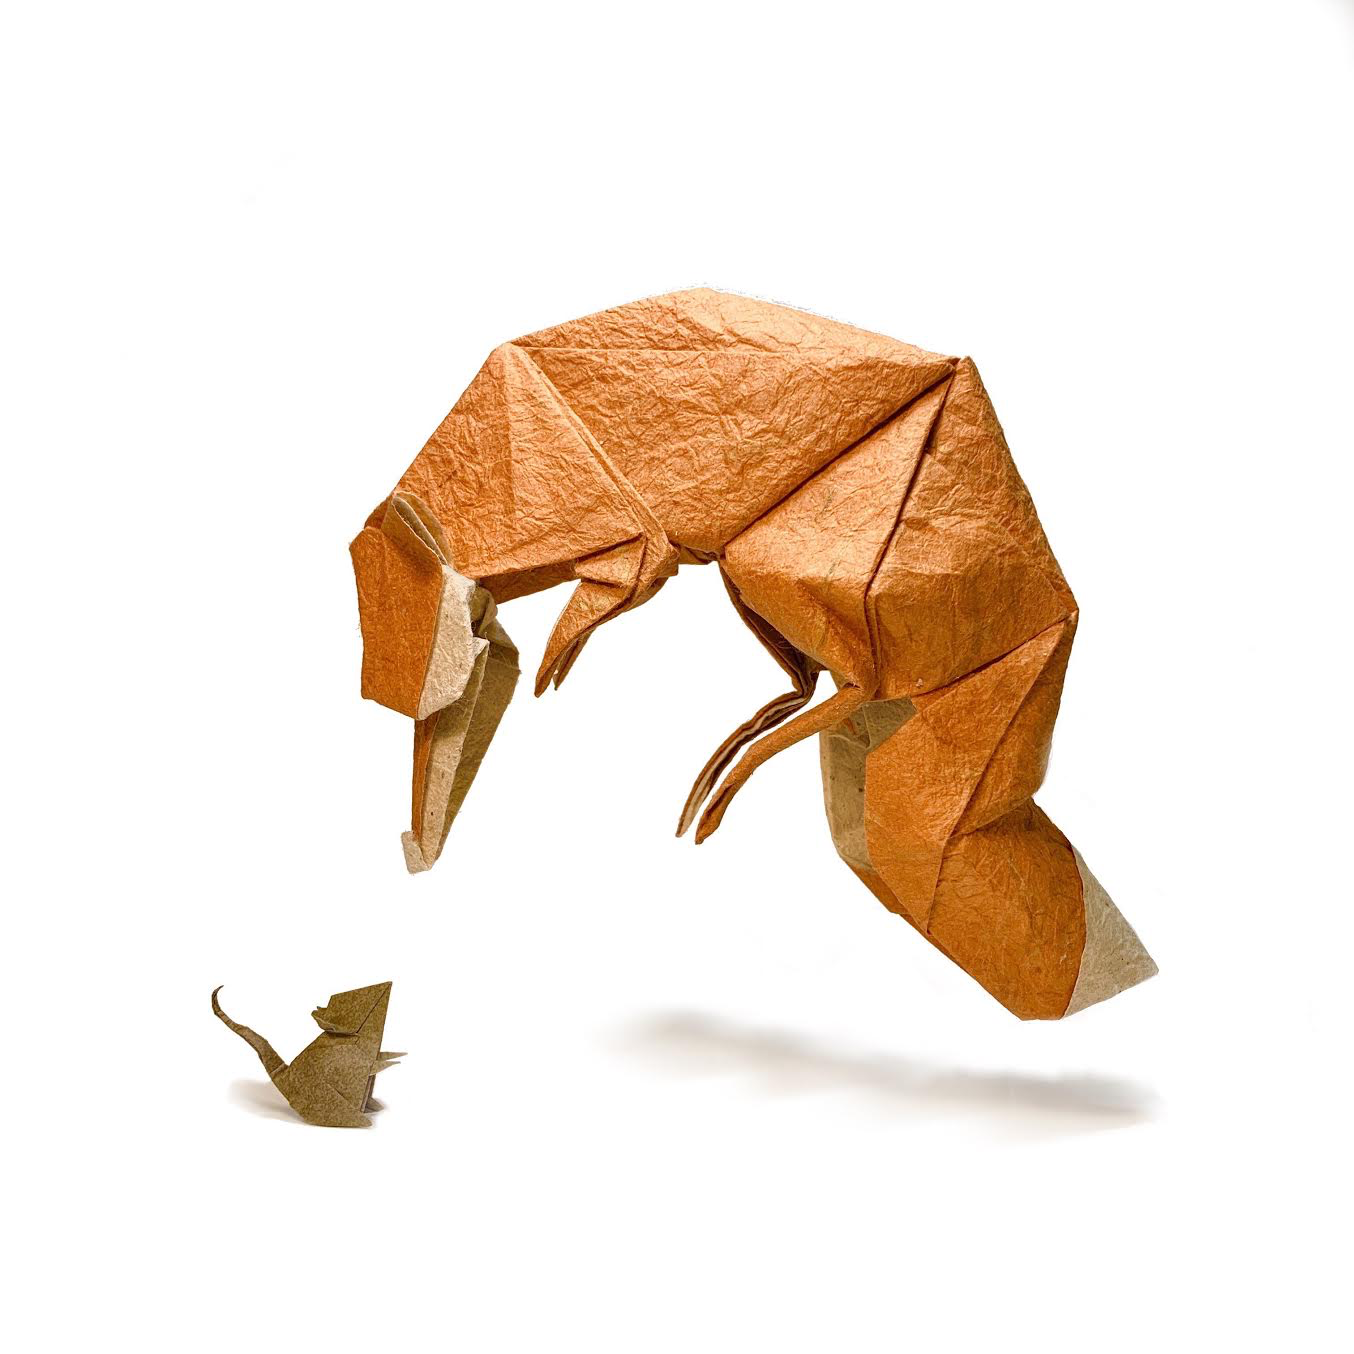 Beth Johnson Origami African bush elephant asian elephant african forest elephant, elephant. beth johnson origami